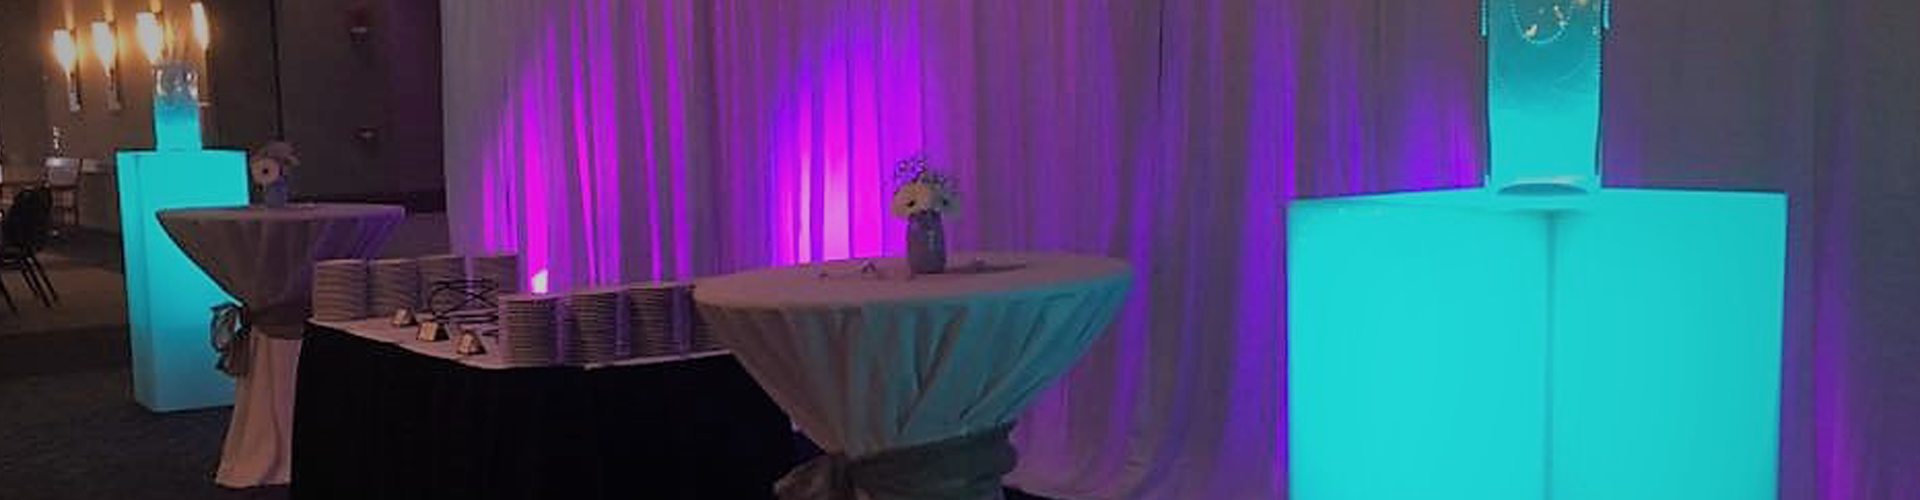 Lighted Decor for Proms and Special Events